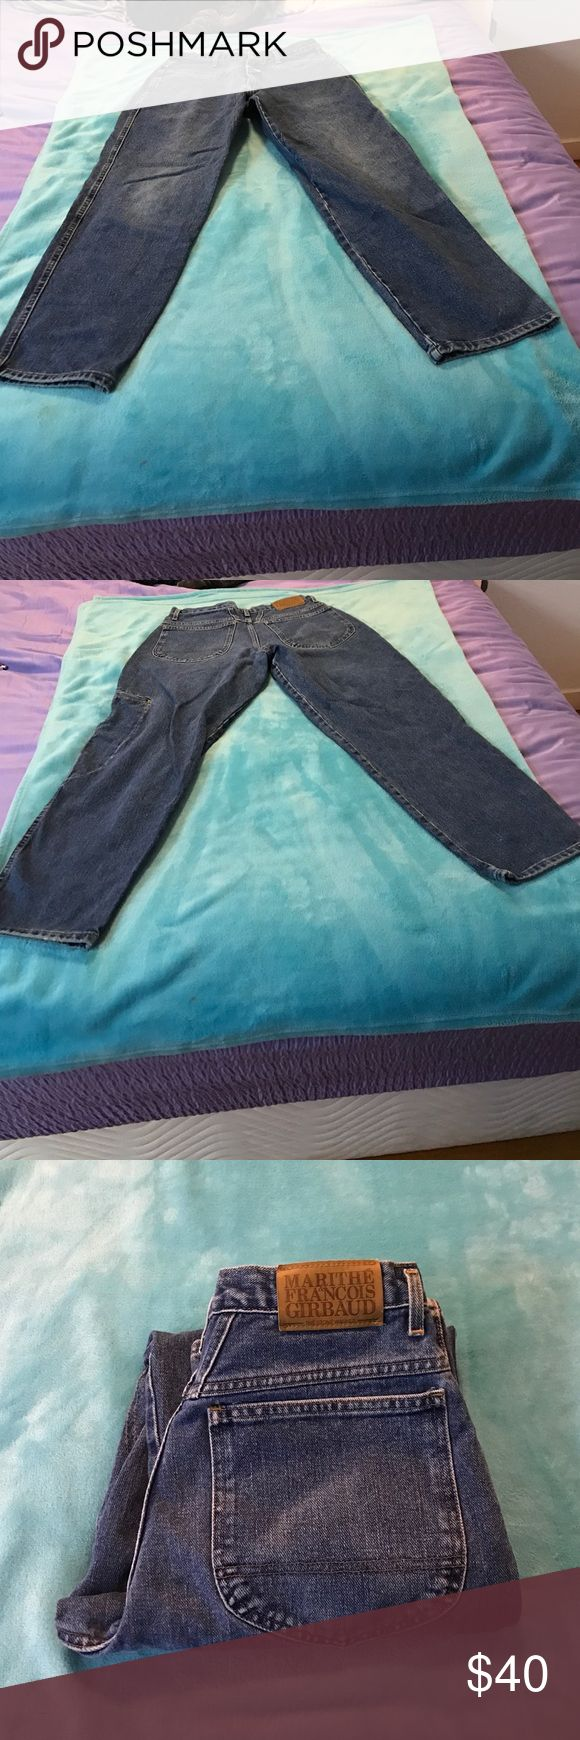 Marithe Francois Girbaud Men's Jeans Gently used Jeans size 29 x 30 Marithe Francois Girbaud Jeans Straight